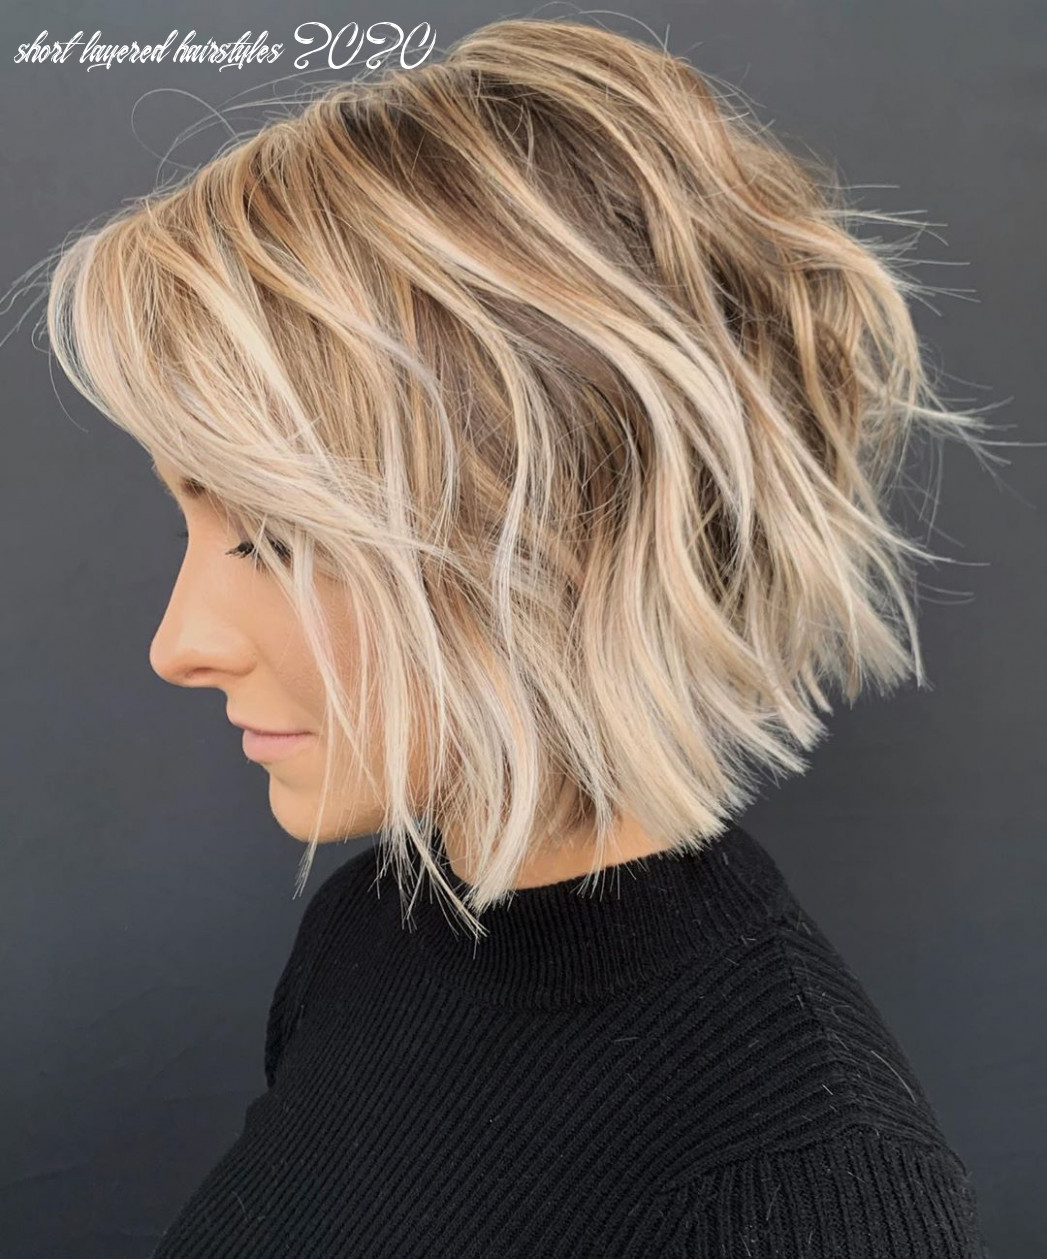 11 newest haircut ideas and haircut trends for 11 hair adviser short layered hairstyles 2020